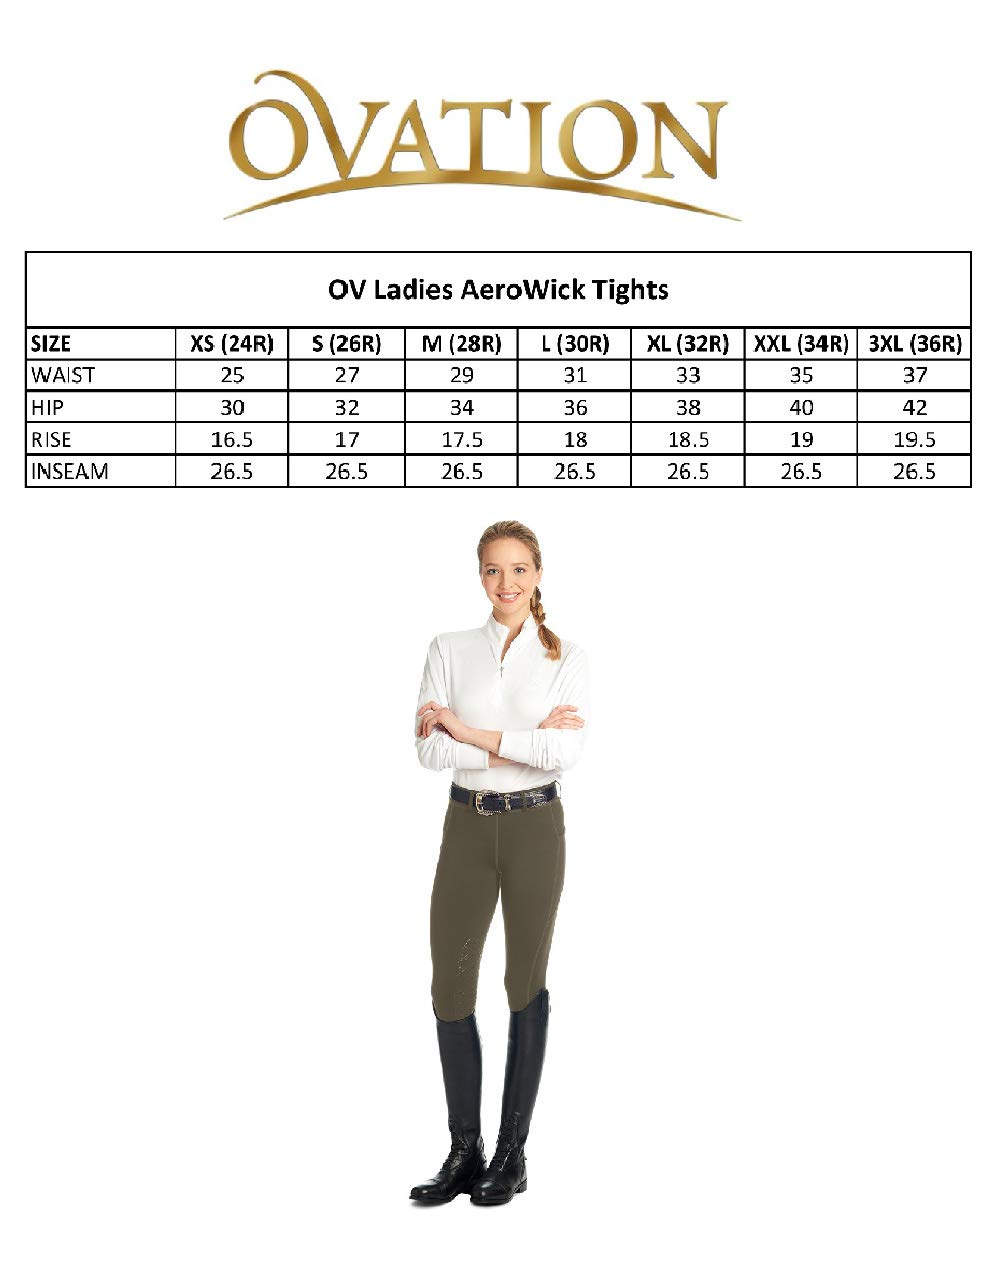 Ovation Ladies AeroWick Silicone Knee Patch Black Tights ENGLISH RIDING SUPPLY